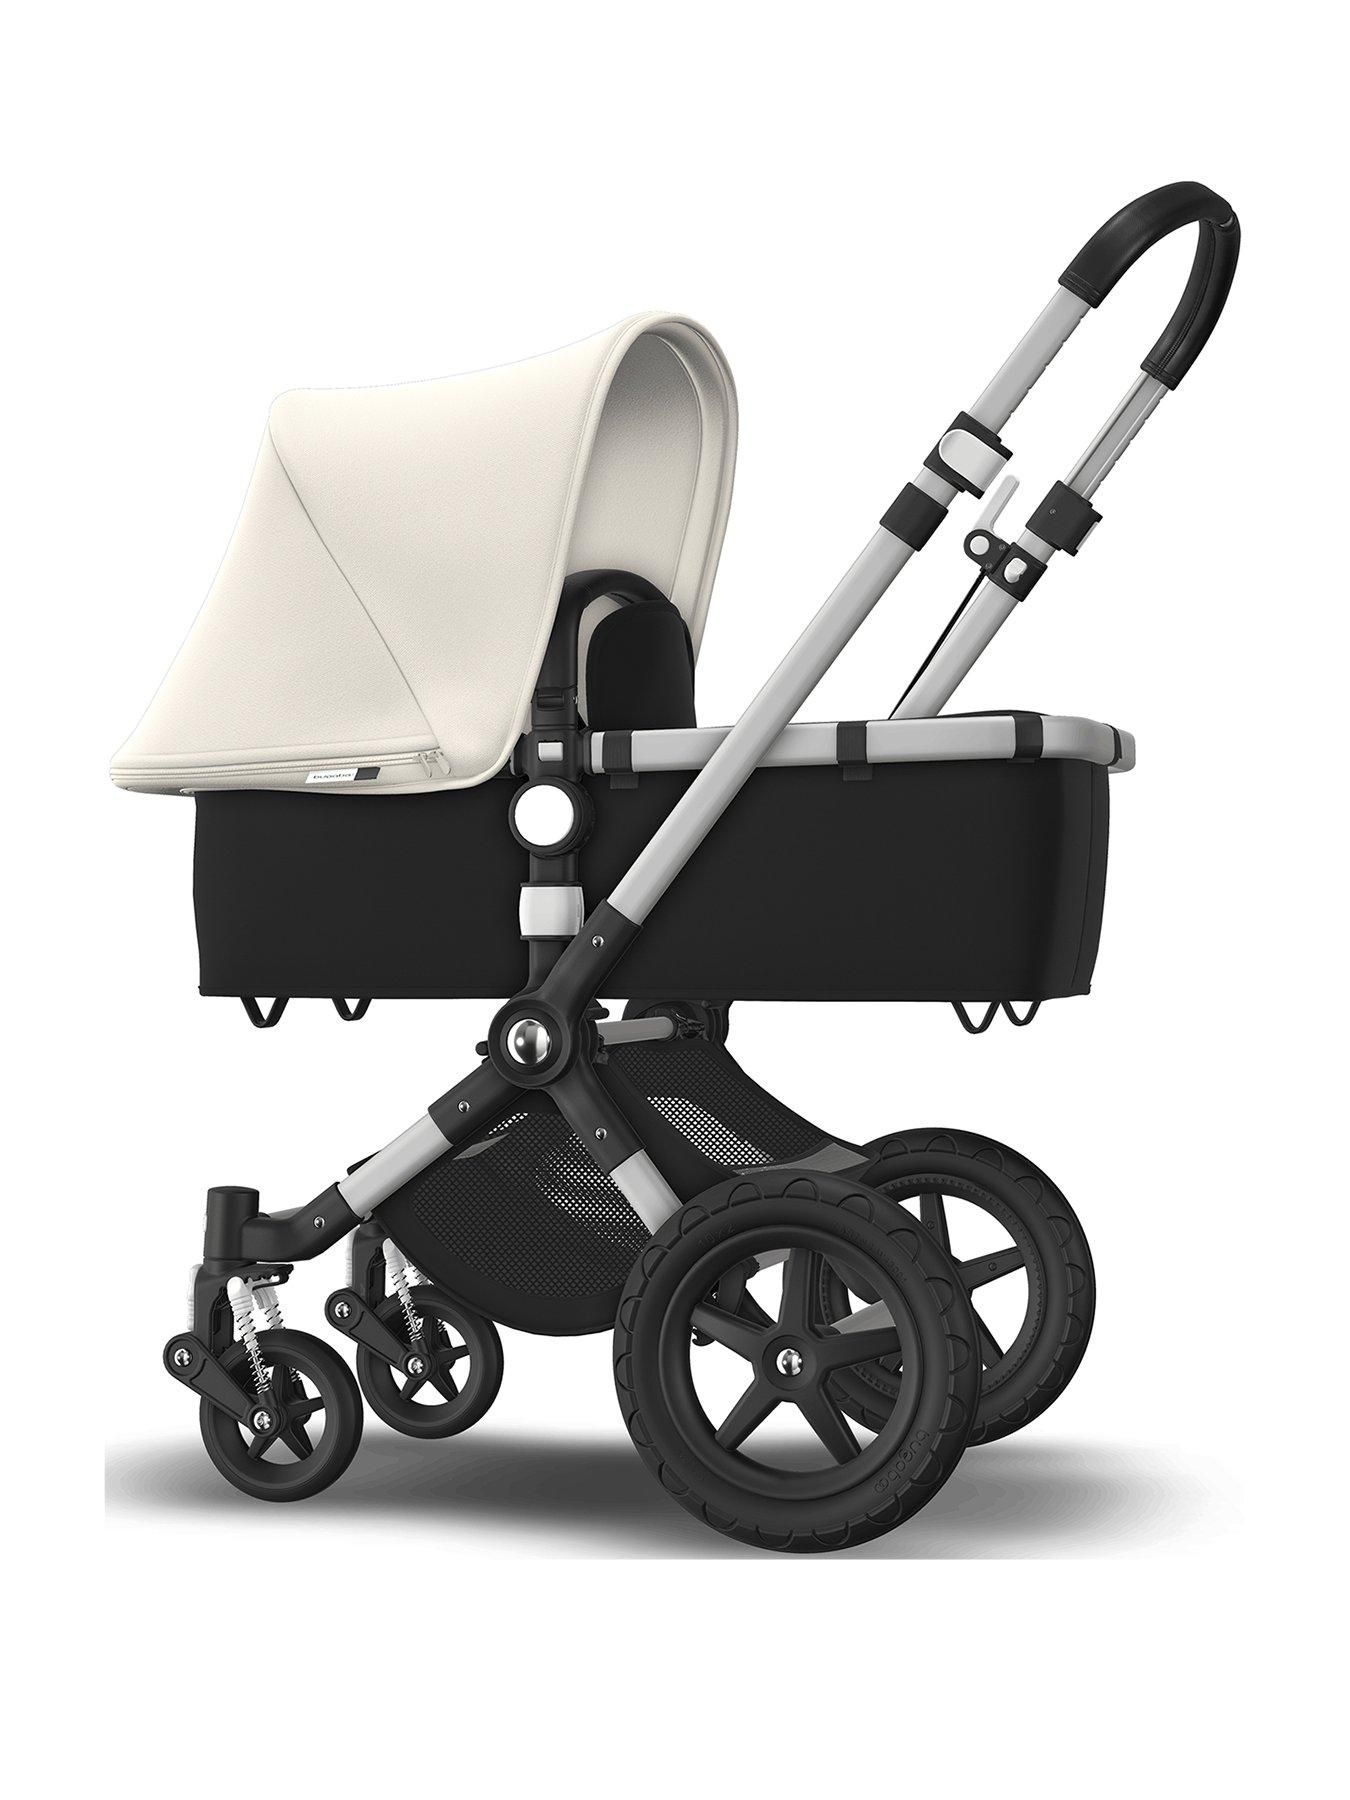 Kinderwagen Easywalker Duo Cameleon 3 Plus Pushchair Fresh White Bugaboo Stroller